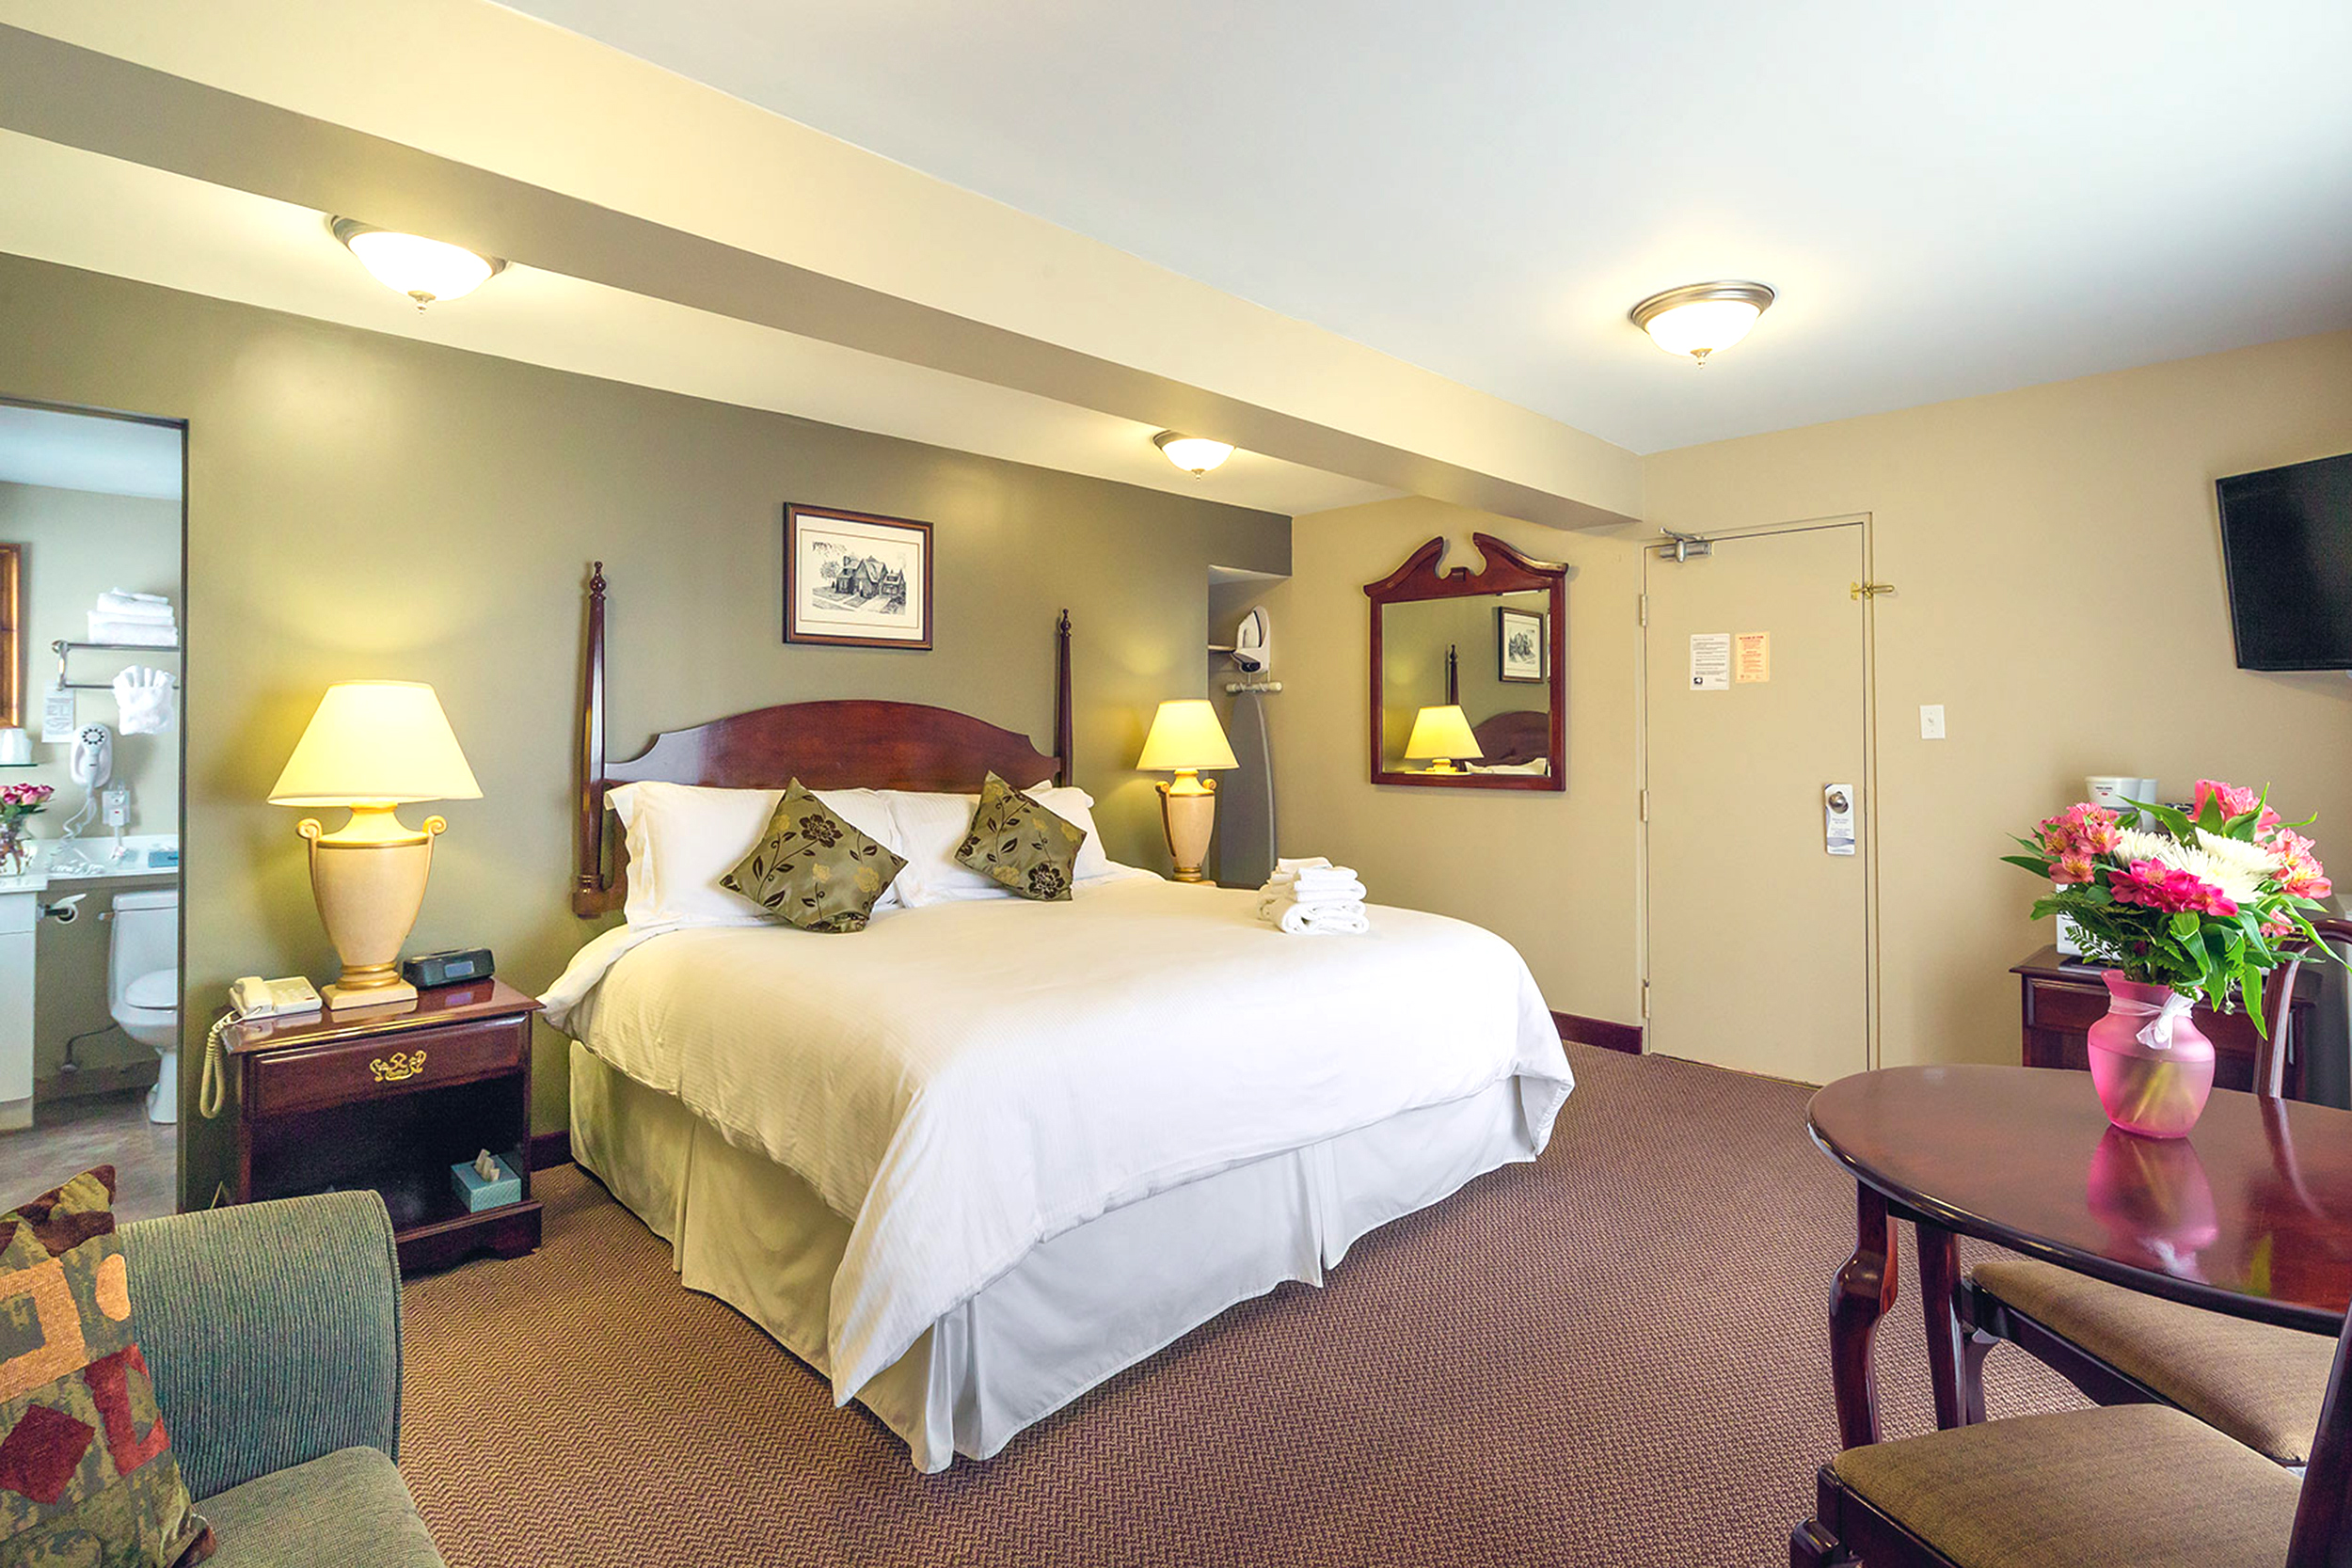 Image of a suite at Kawartha Lakes Retirement Residence in Bobcaygeon